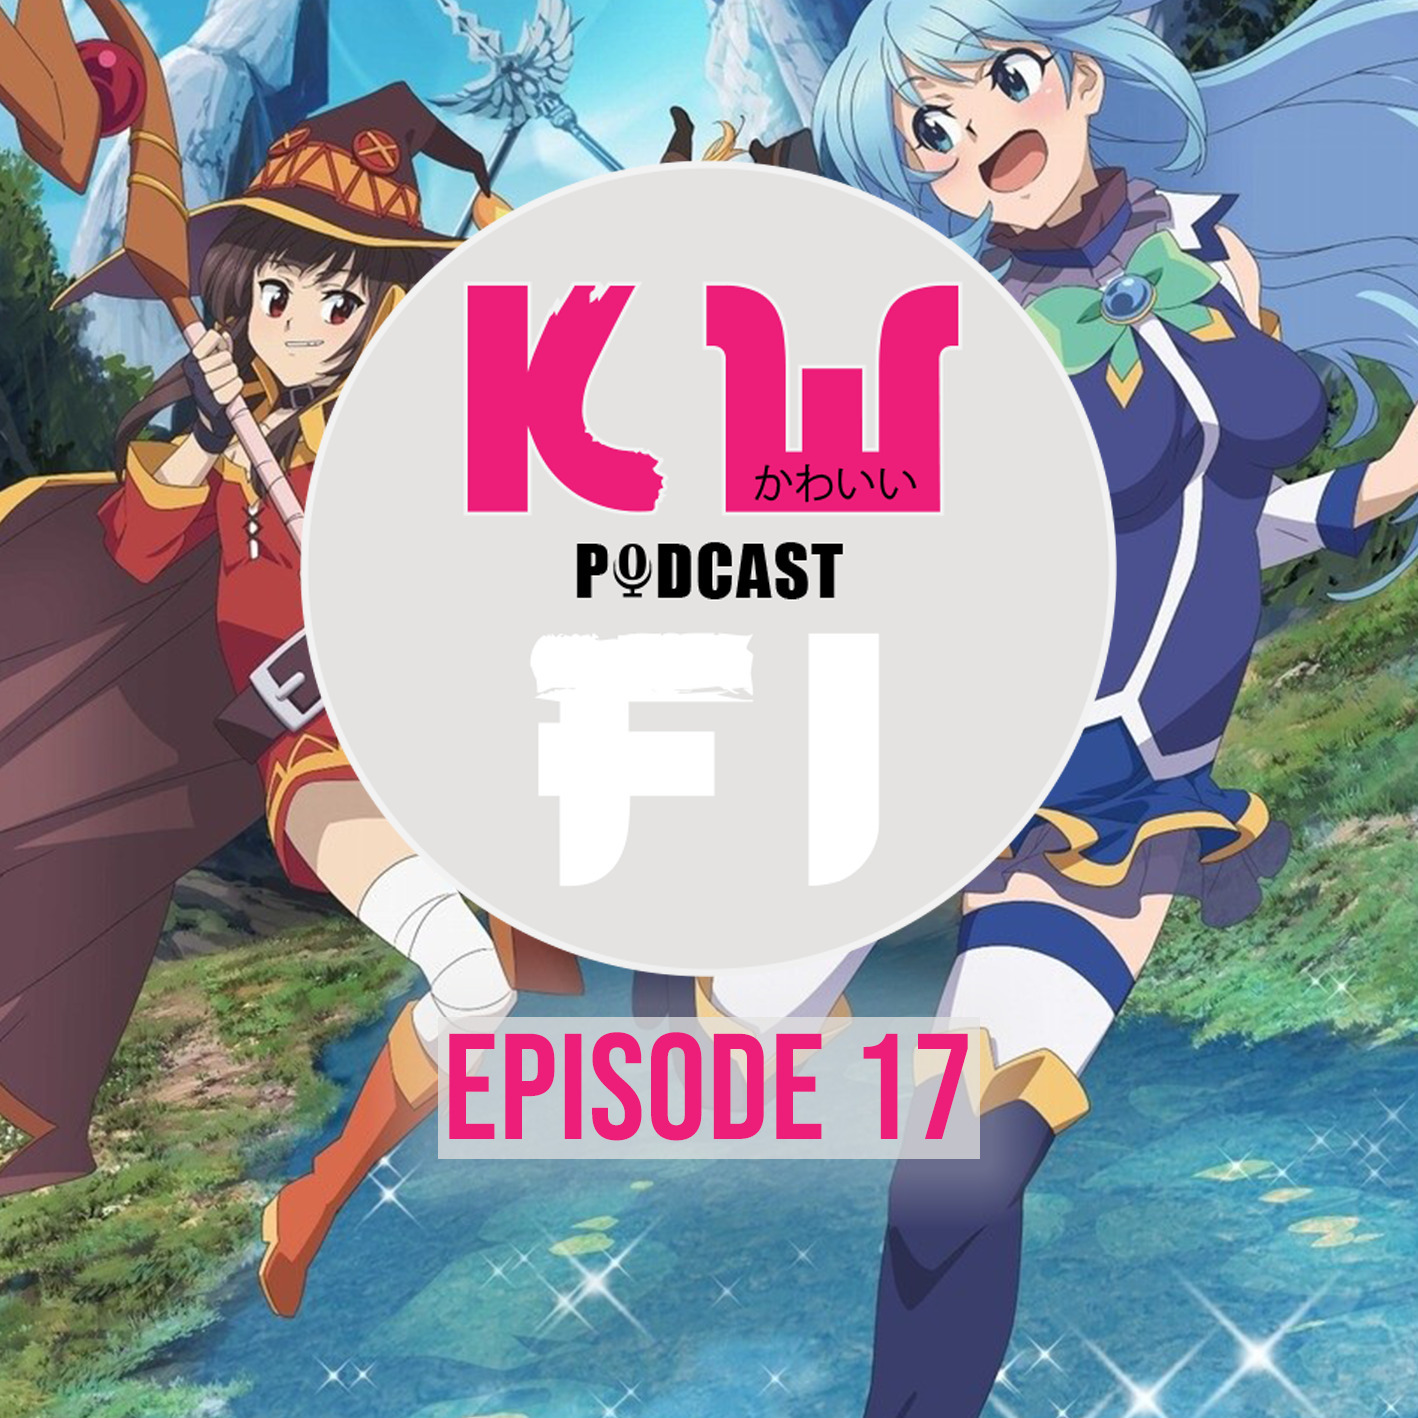 Episode 17: What is Isekai?